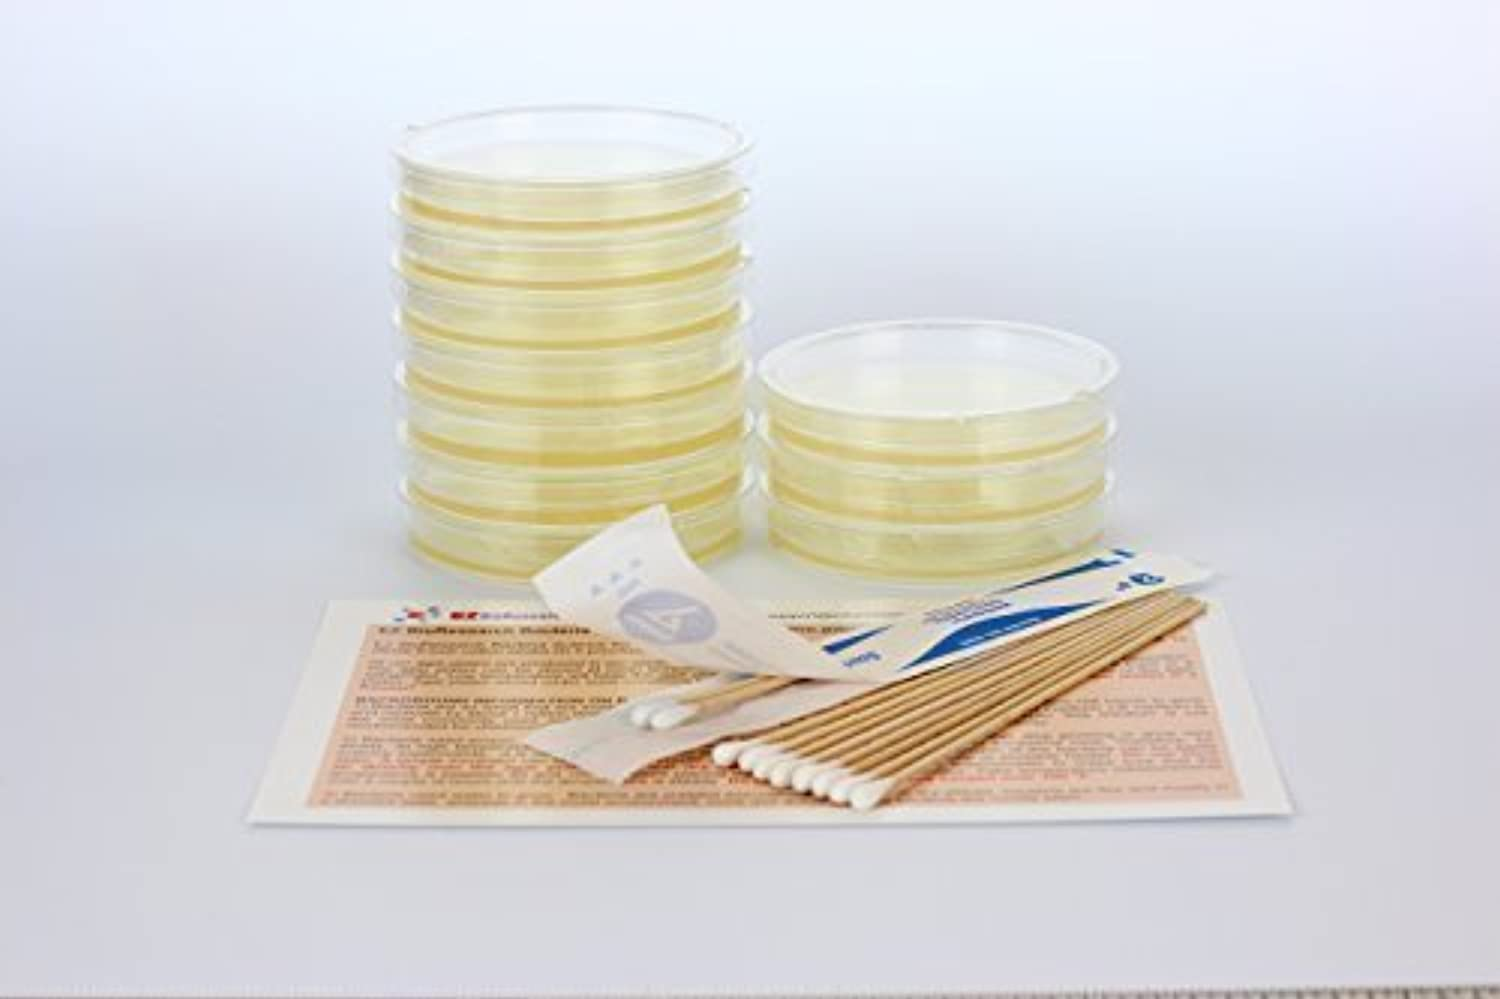 EZ BioResearch Bacteria Science Kit (II)  Top Science Fair Project Kit. Prepourot LB-Agar Plates And CottonSwabs. Exclusive Free Science Fair Project E-Book Packed With Award Winning Experiments. by EZ BioResearch